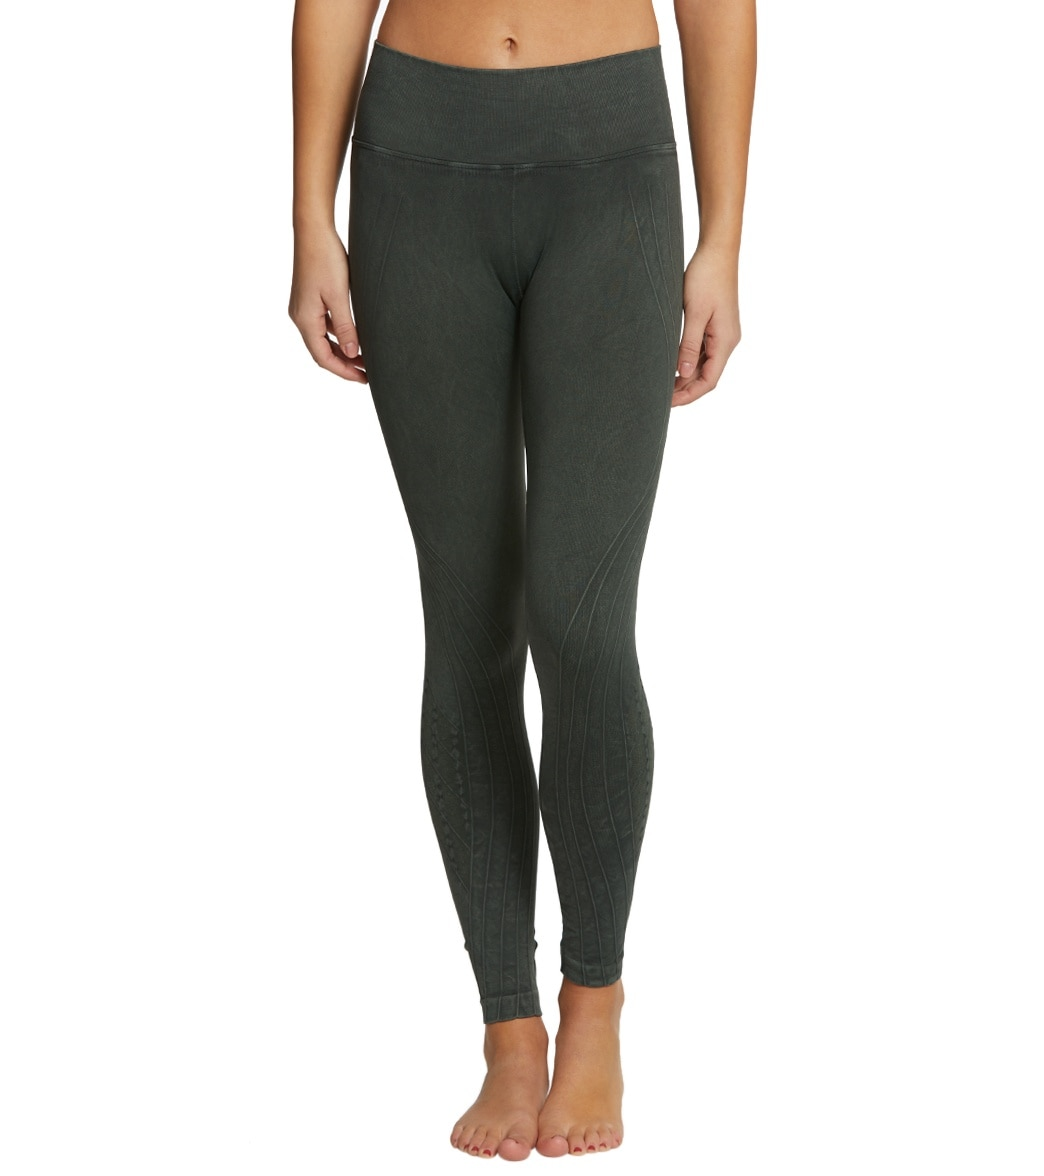 3531352068 NUX Mesa Mineral Wash Seamless Yoga Leggings at YogaOutlet.com ...